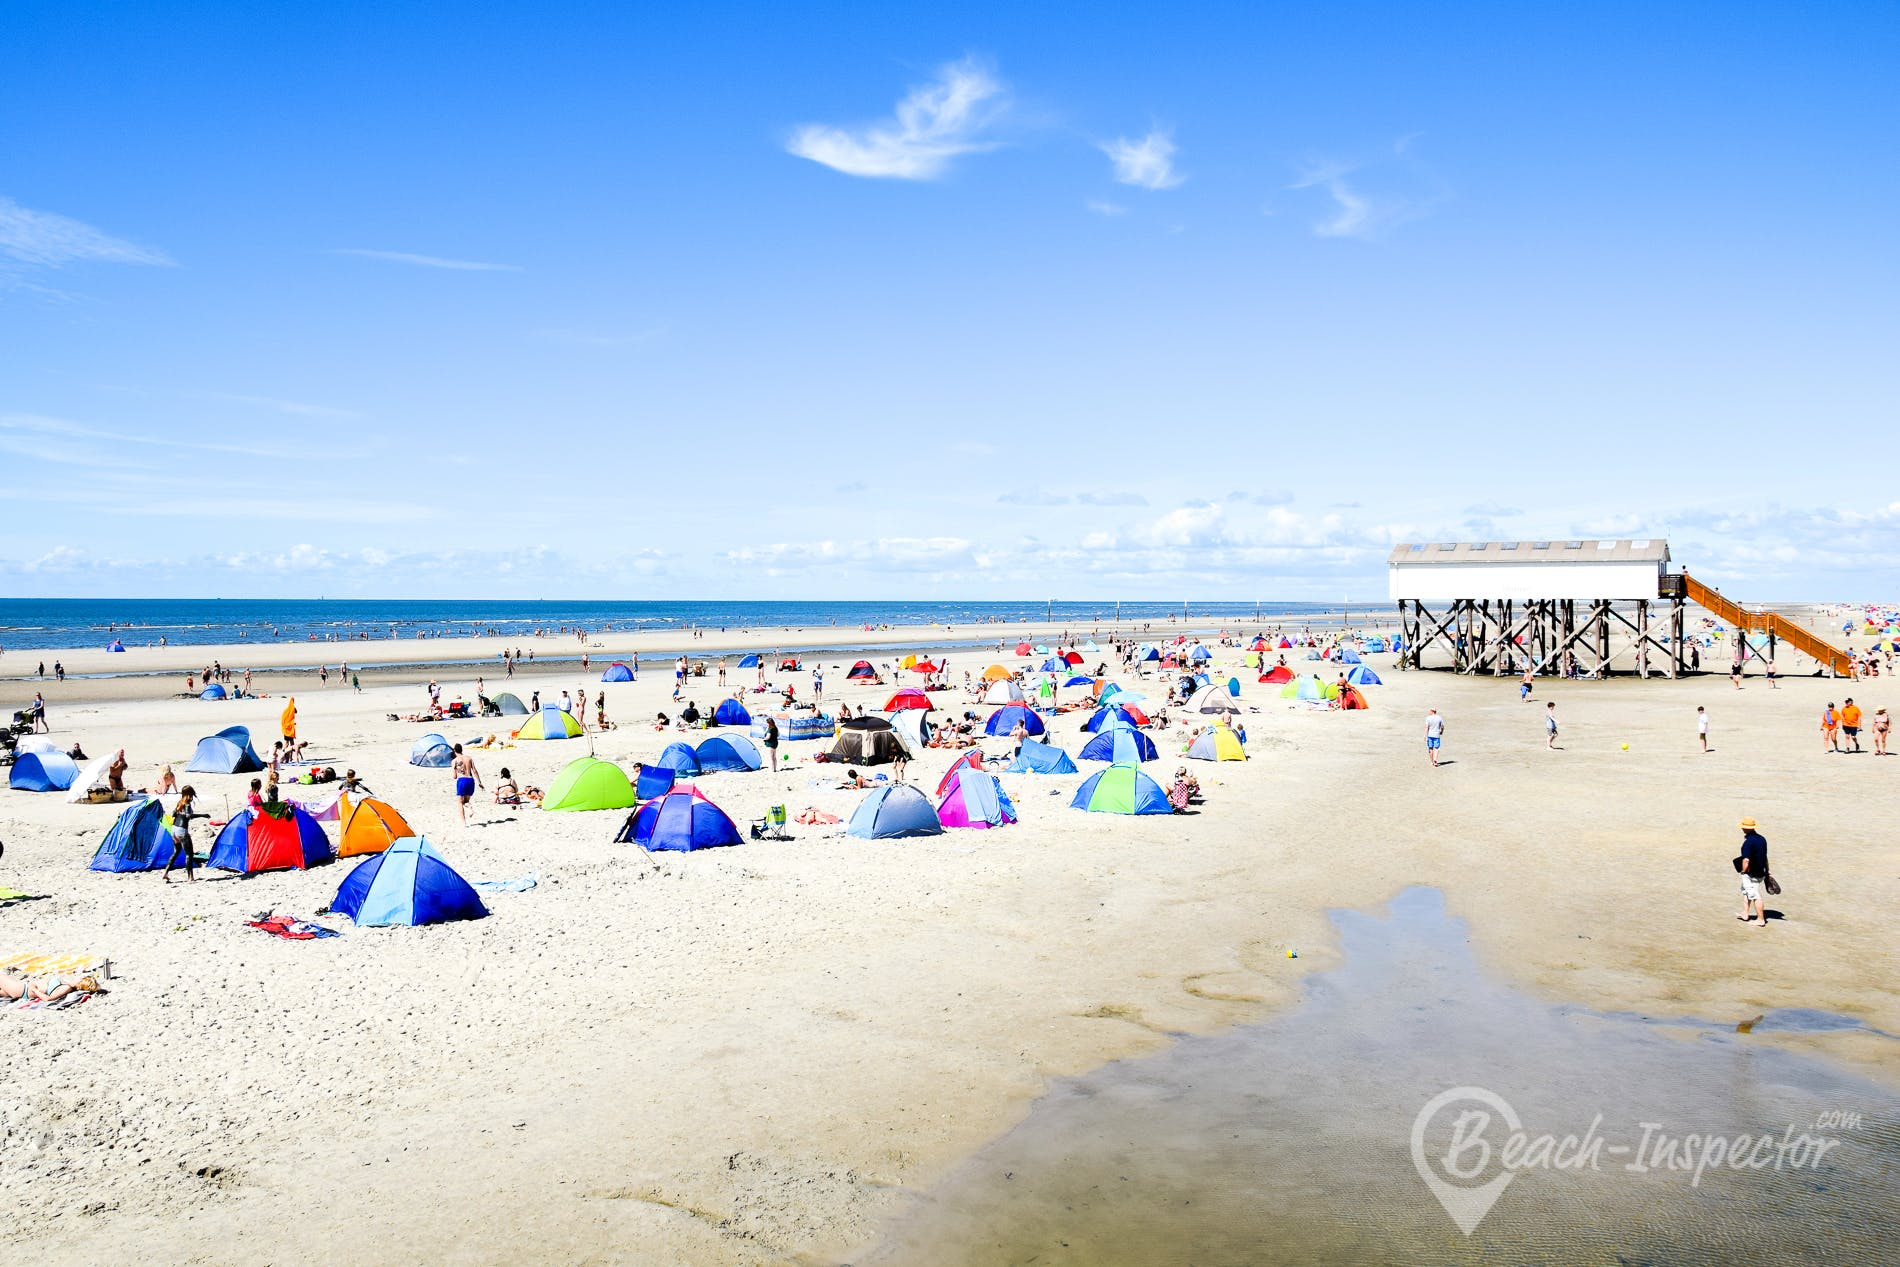 Beach Badestelle Ording Nord - FKK, Germany, Germany